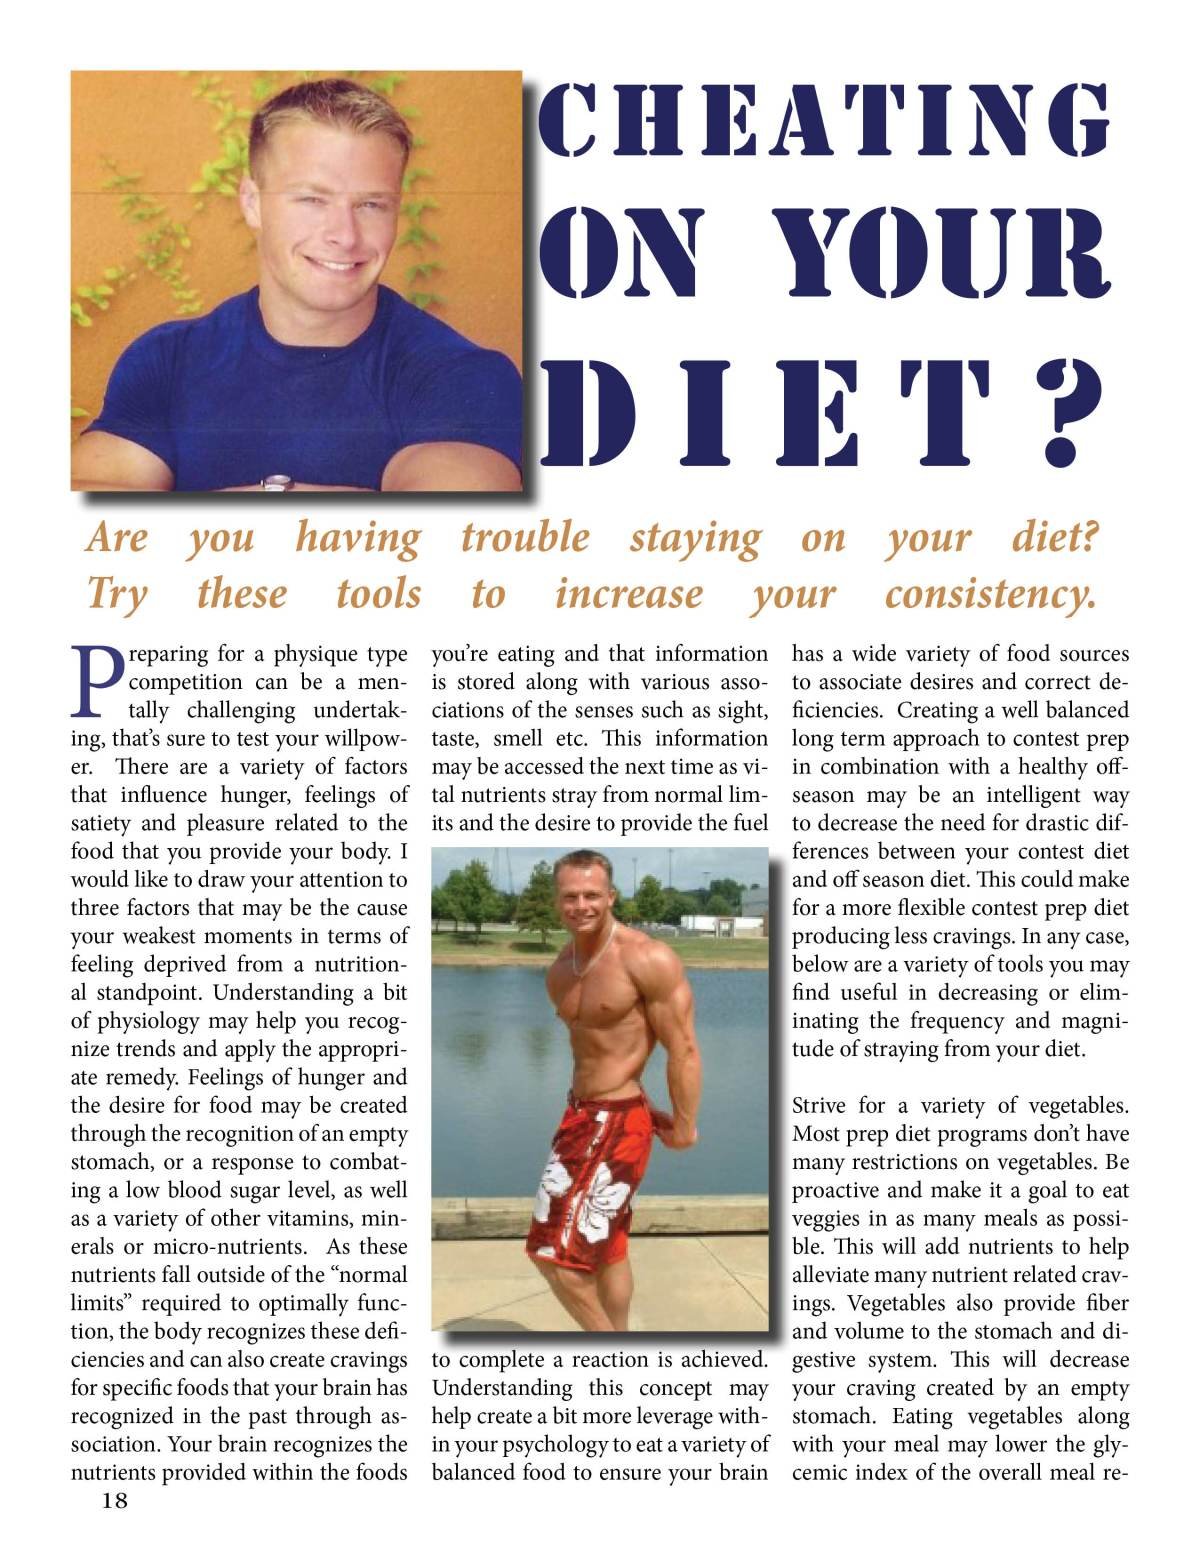 Cheating On Your Diet? NW Fitness Magazine, Jeremy Williams